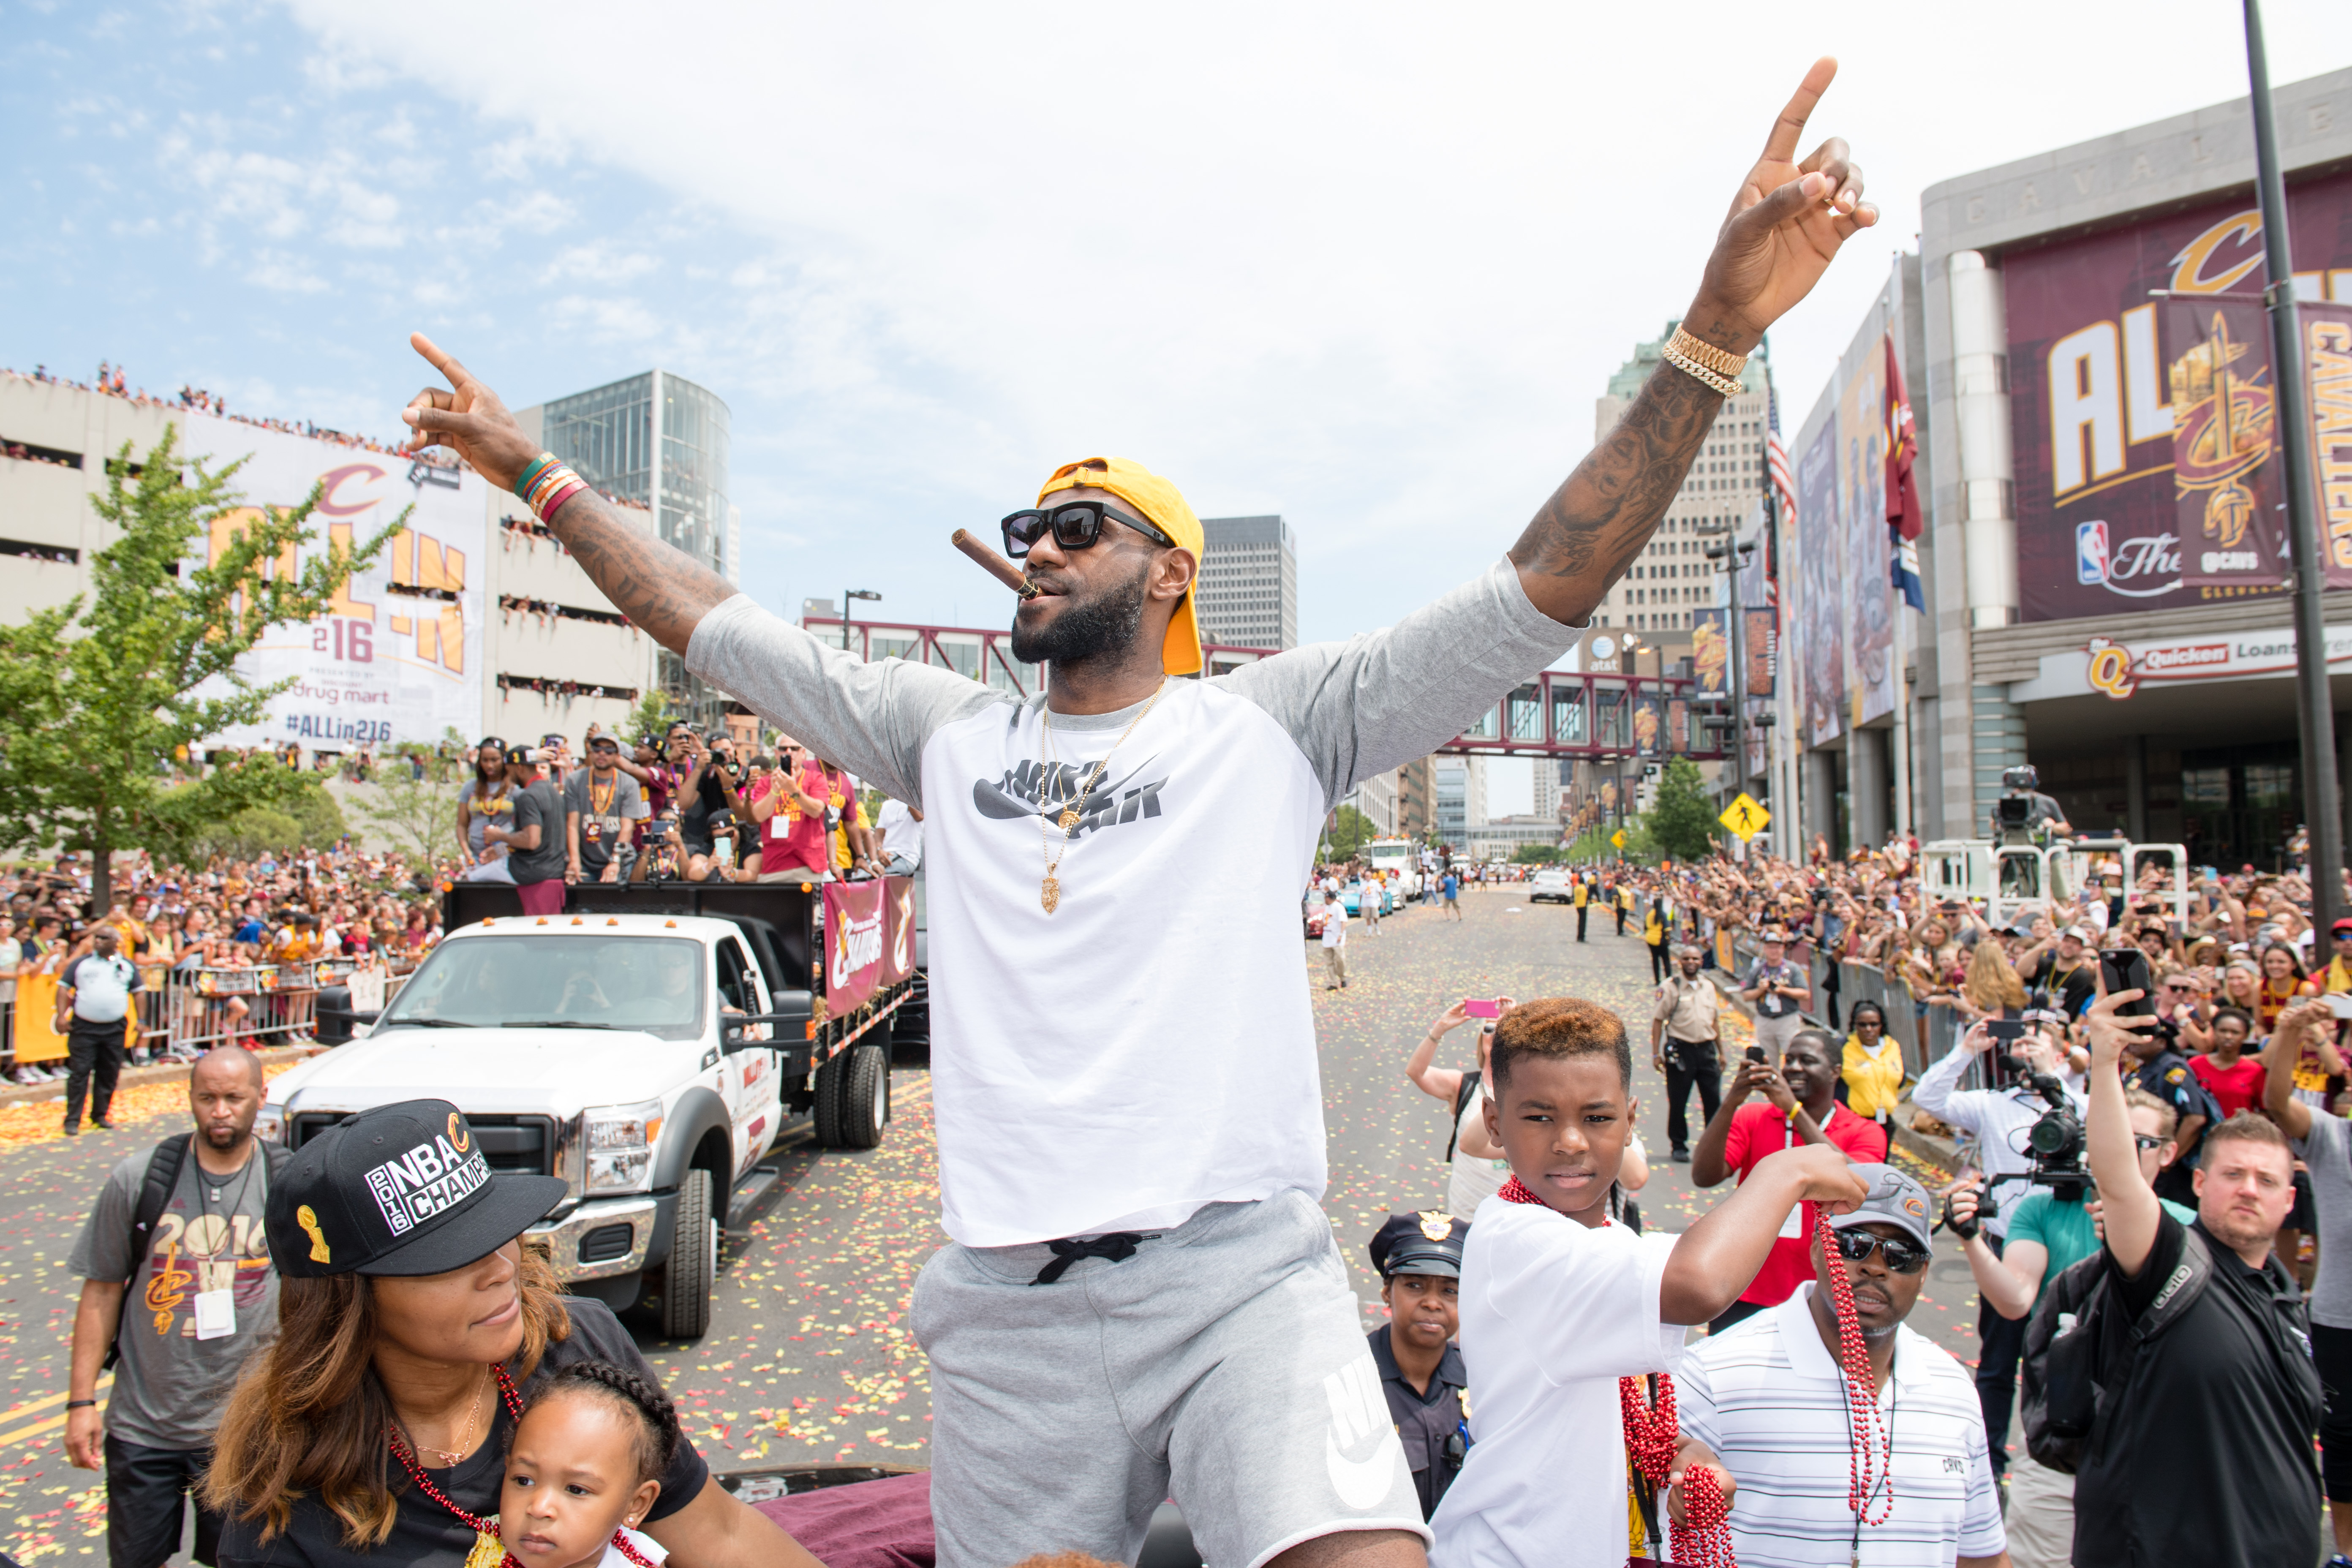 CLEVELAND, OH -  JUNE 22: LeBron James #23 of the Cleveland Cavaliers celebrates during the Cleveland Cavaliers 2016 championship victory parade and rally on June 22, 2016 in Cleveland, Ohio. (Photo by Jason Miller/Getty Images) *** BESTPIX ***